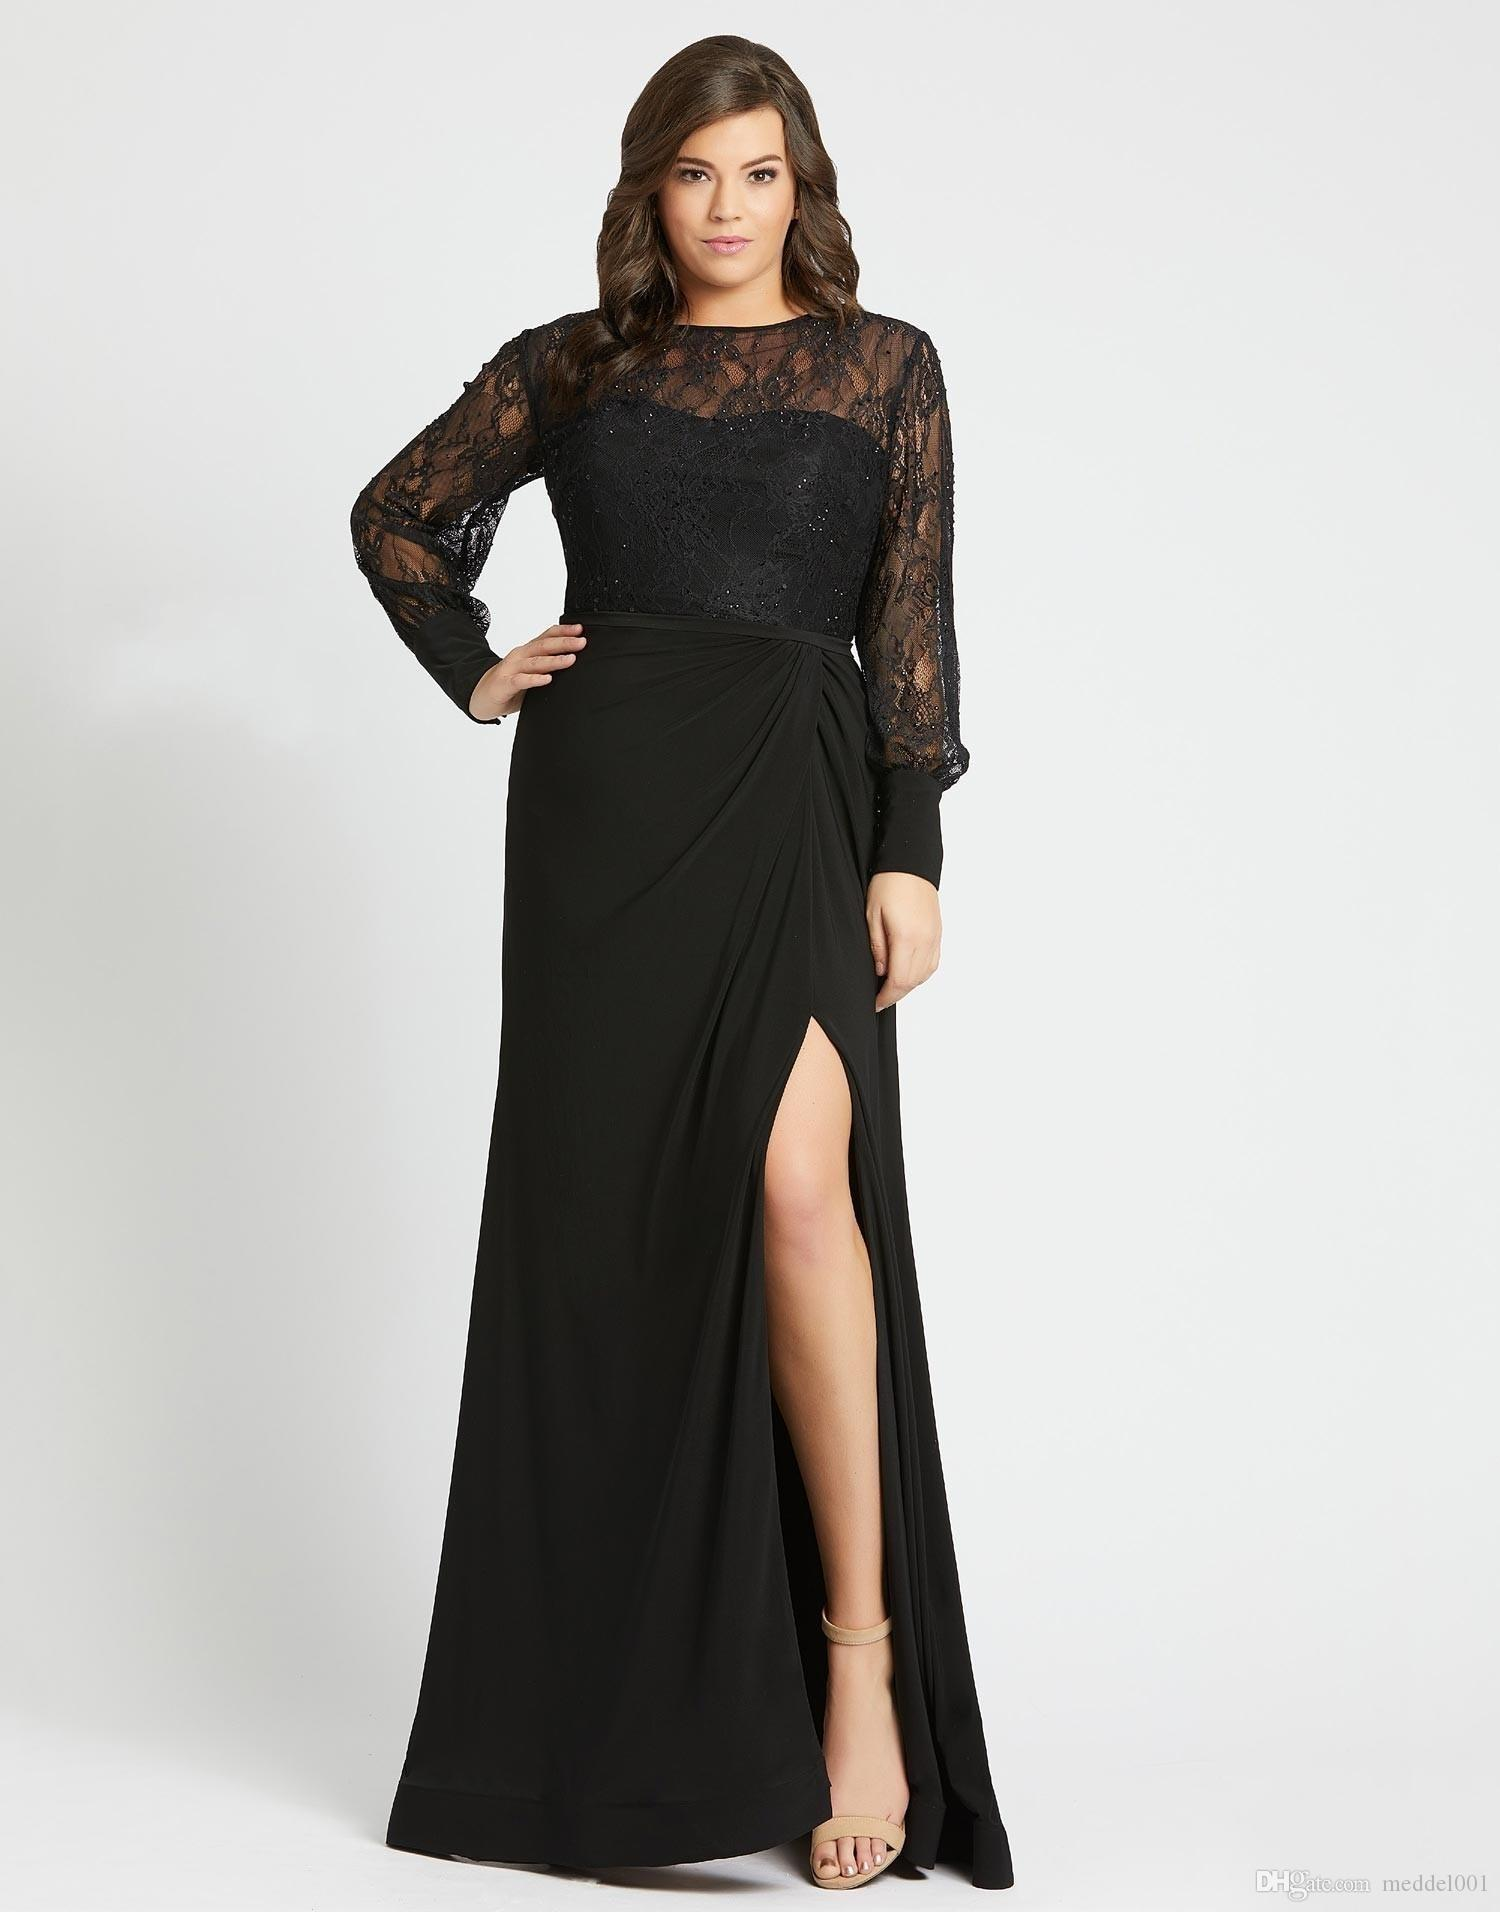 Black Lace High Side Split Plus Size Formal Evening Dresses For Special  Occasion Women 2020 Lace Beads Long Sleeve Pleated Prom Party Dres Dresses  For ...